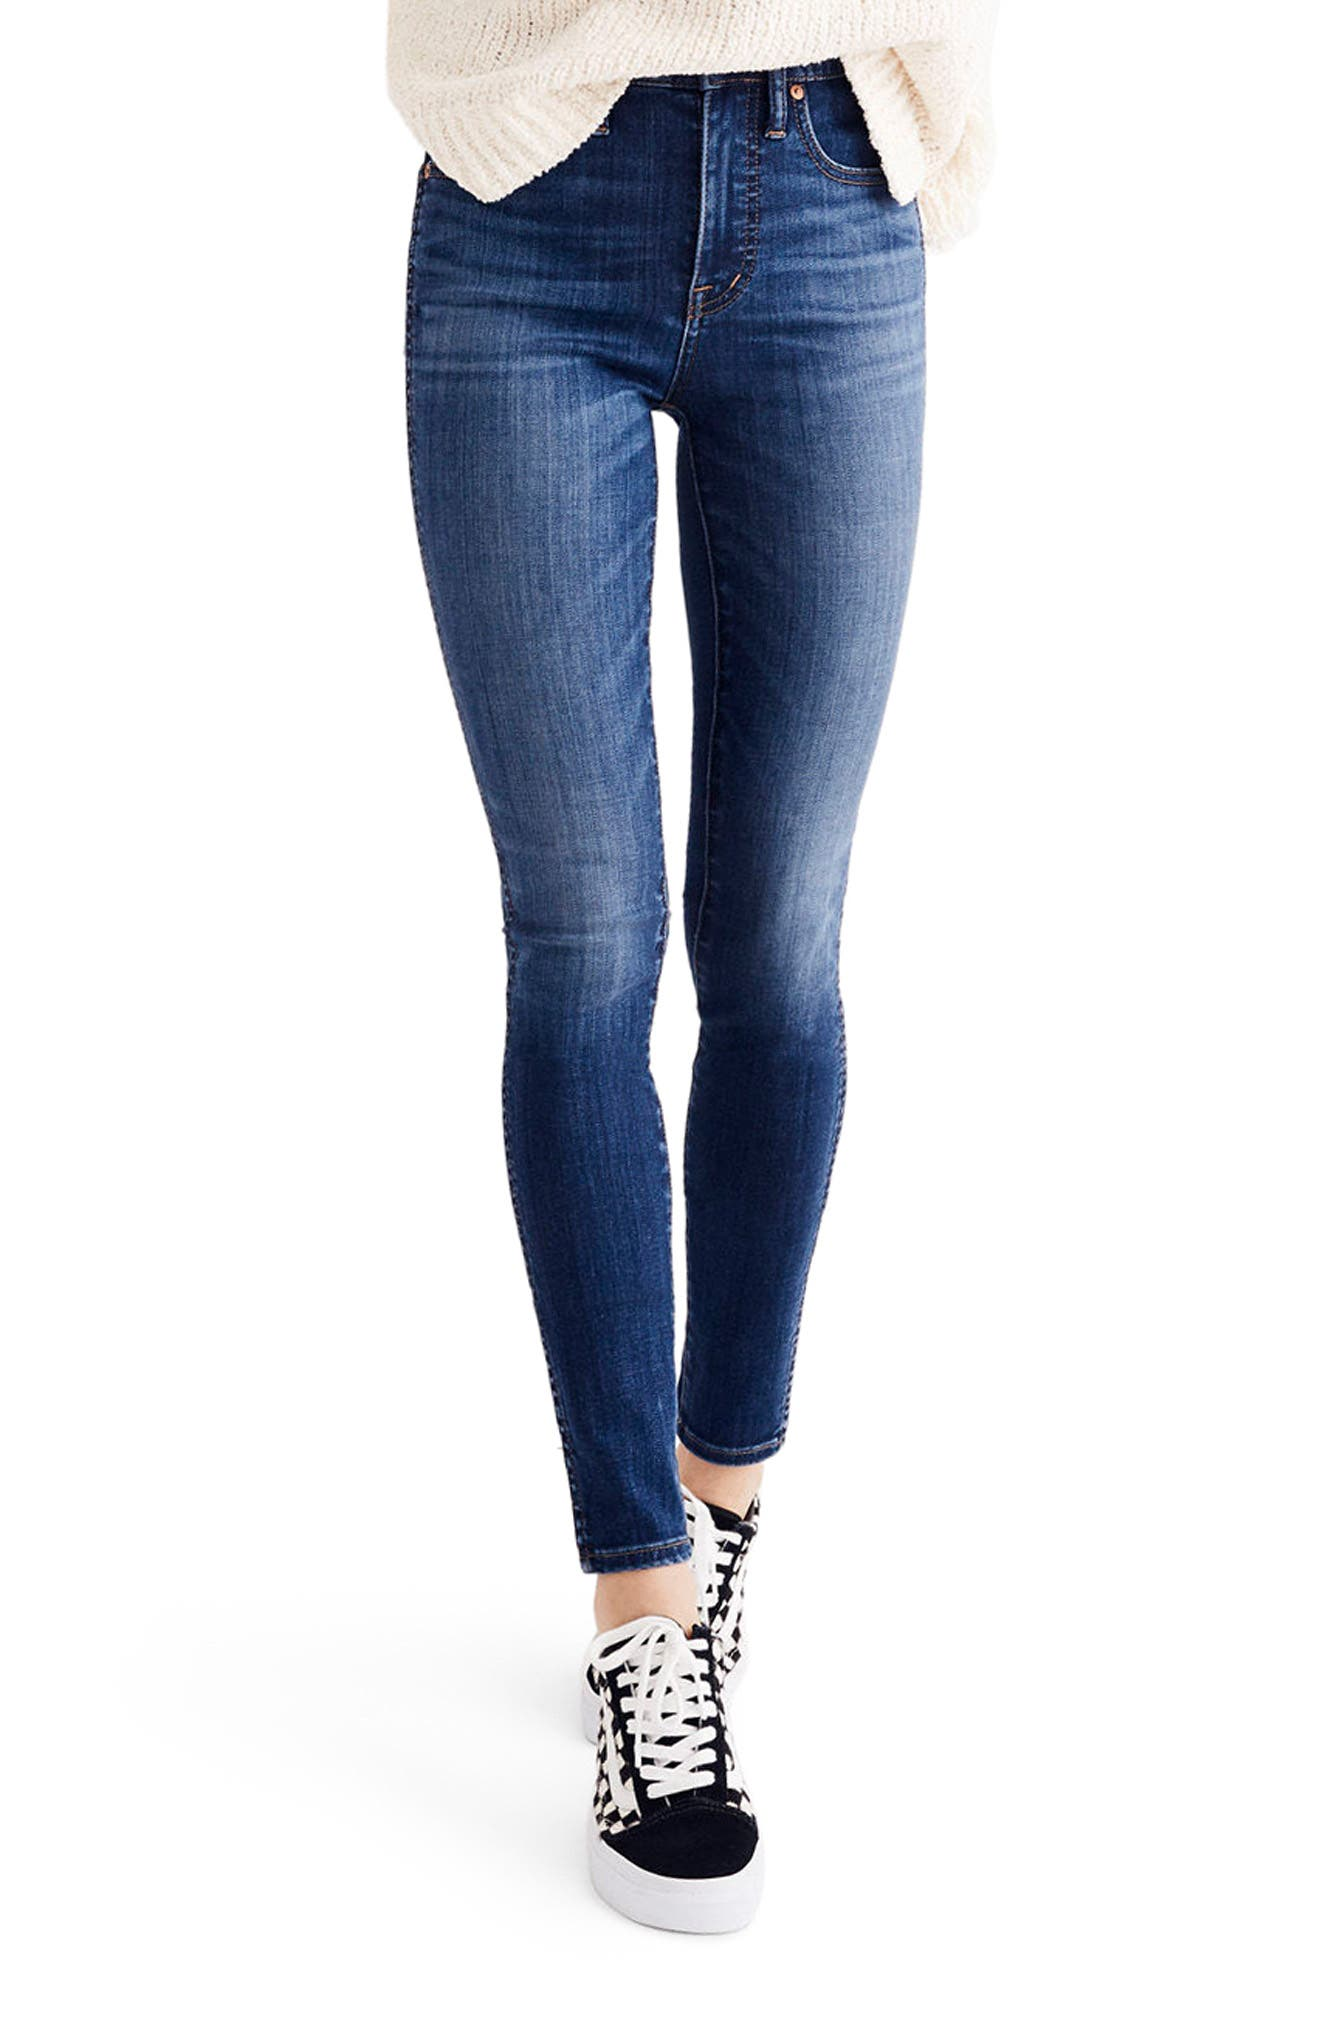 10-Inch High Waist Skinny Jeans,                         Main,                         color, Danny